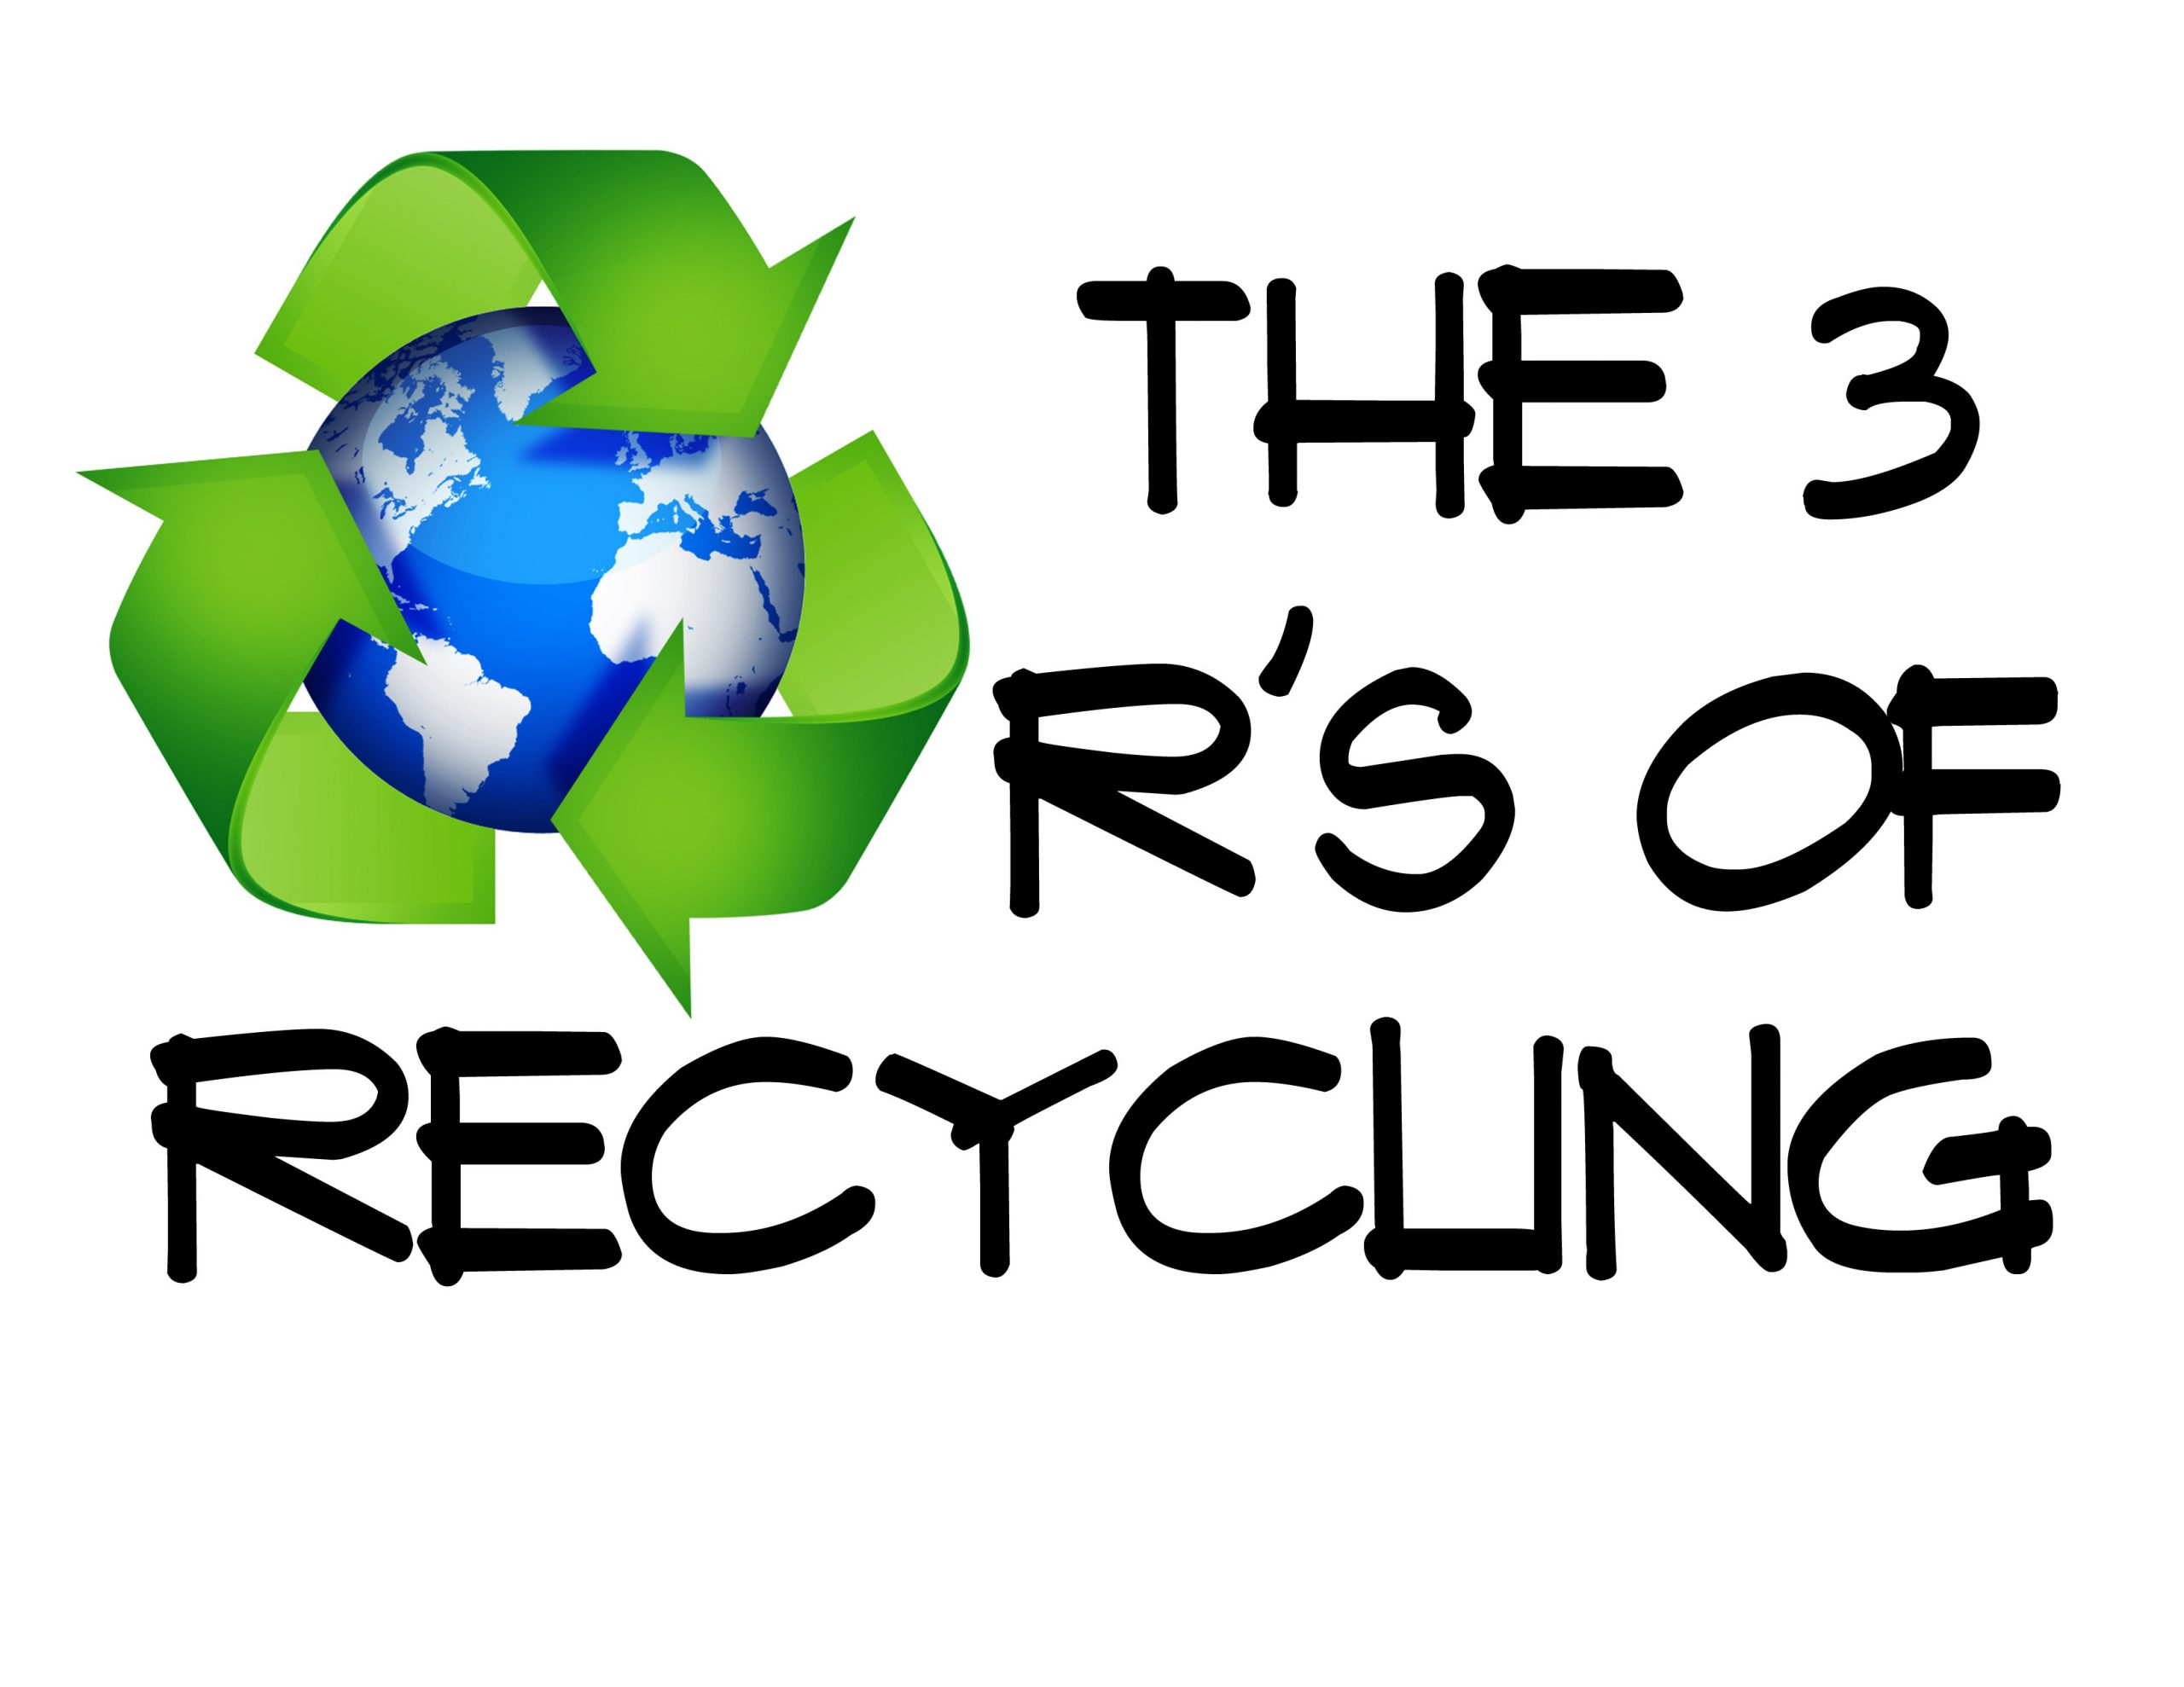 Recycling Worksheets for Middle School the 3 R S Of Recycling Printables